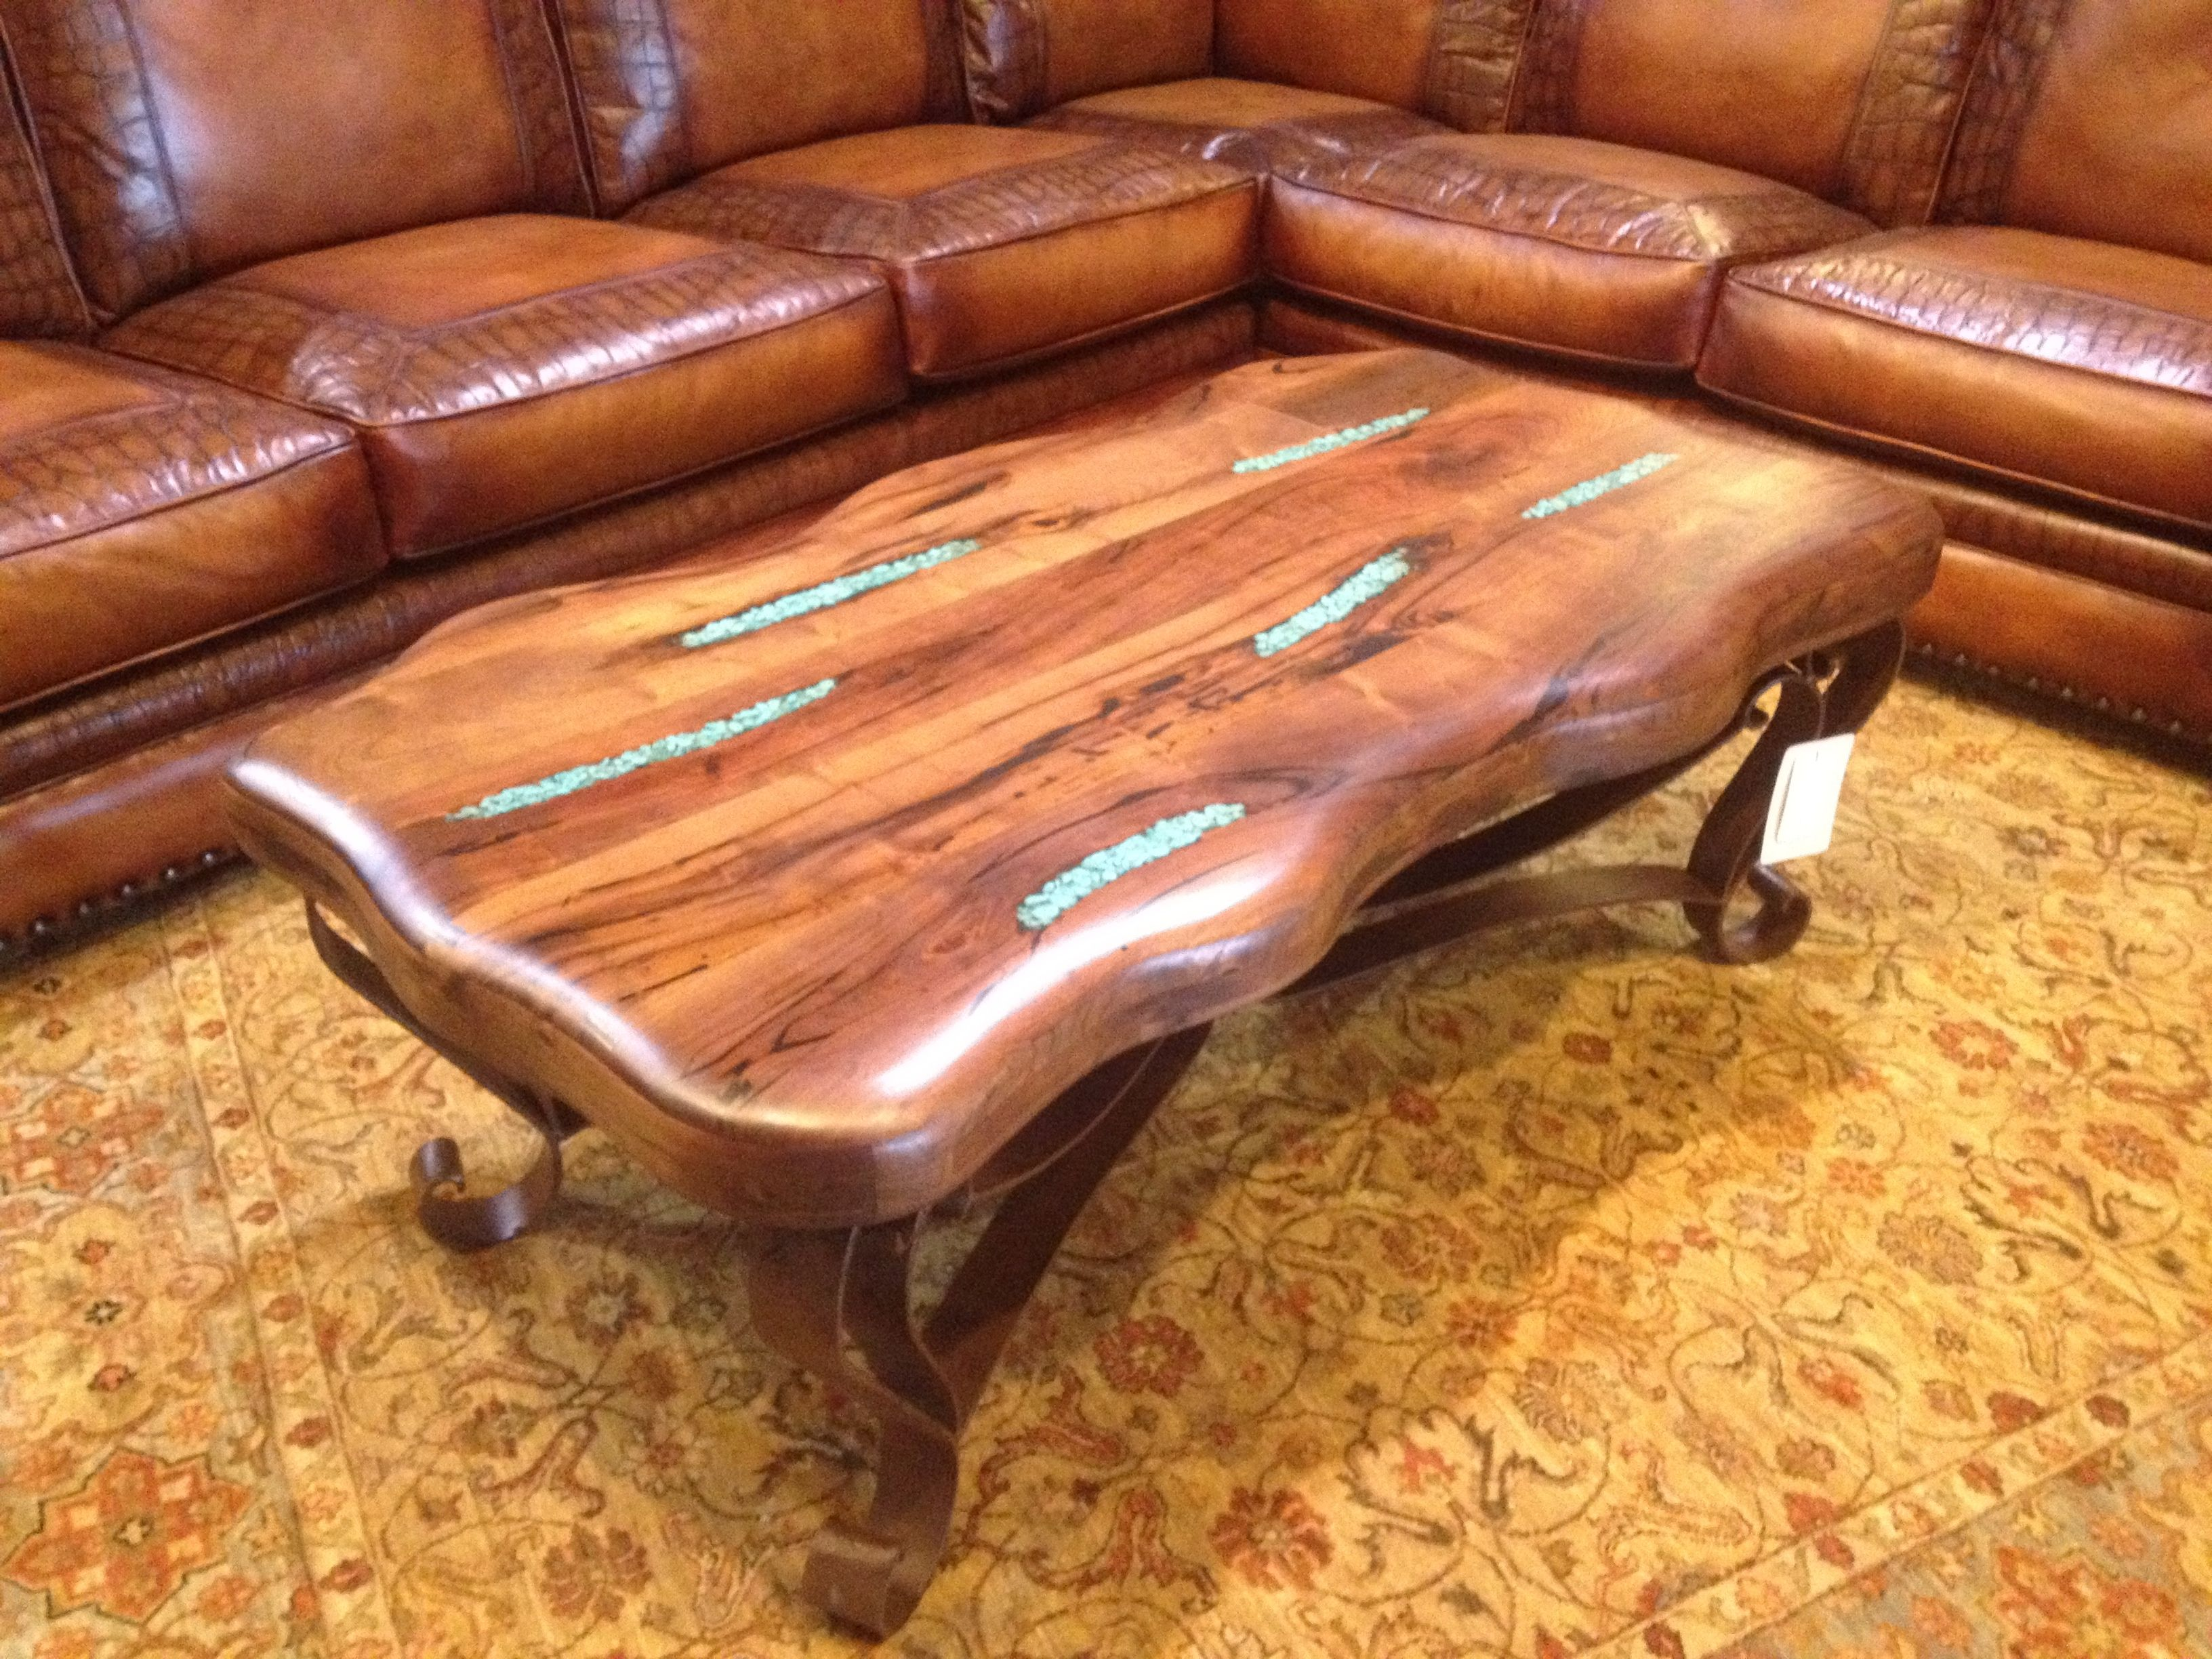 Delicieux Add A Work Of Art To Your Living Area With A Mesquite Wood Coffee Table. It  Is Detailed With Inlaid Turquoise Resin And Has An Ornate Iron Base.